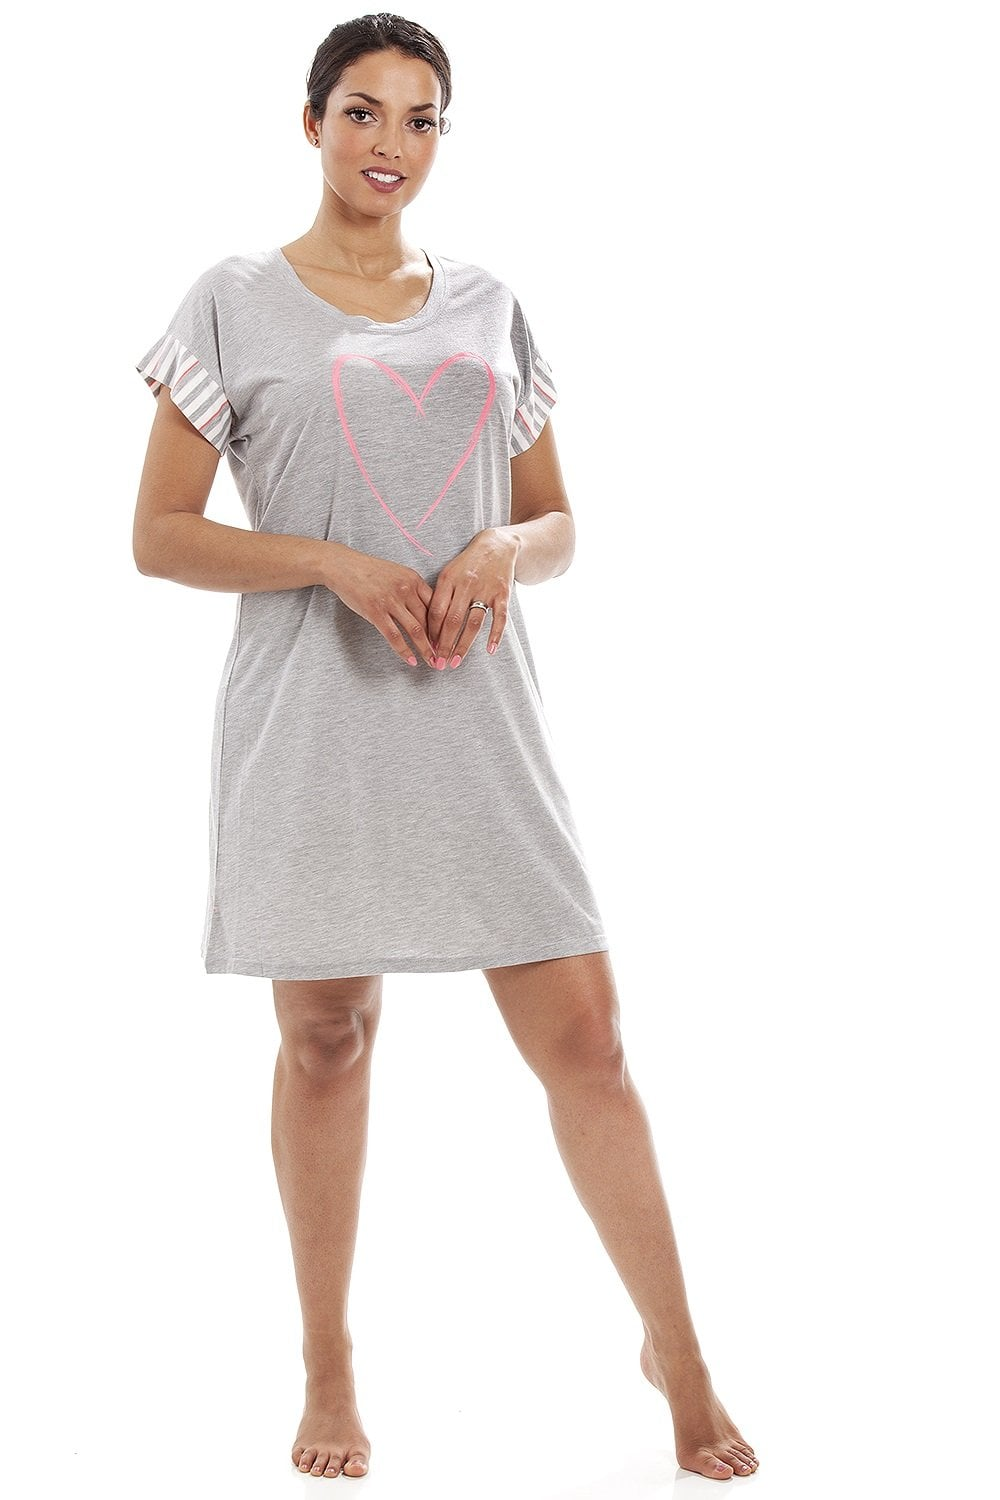 Camille Womens Ladies Short Sleeve Plain Nightshirt With Fluorescent Heart  Motif 8-18 5fc1dc7c2